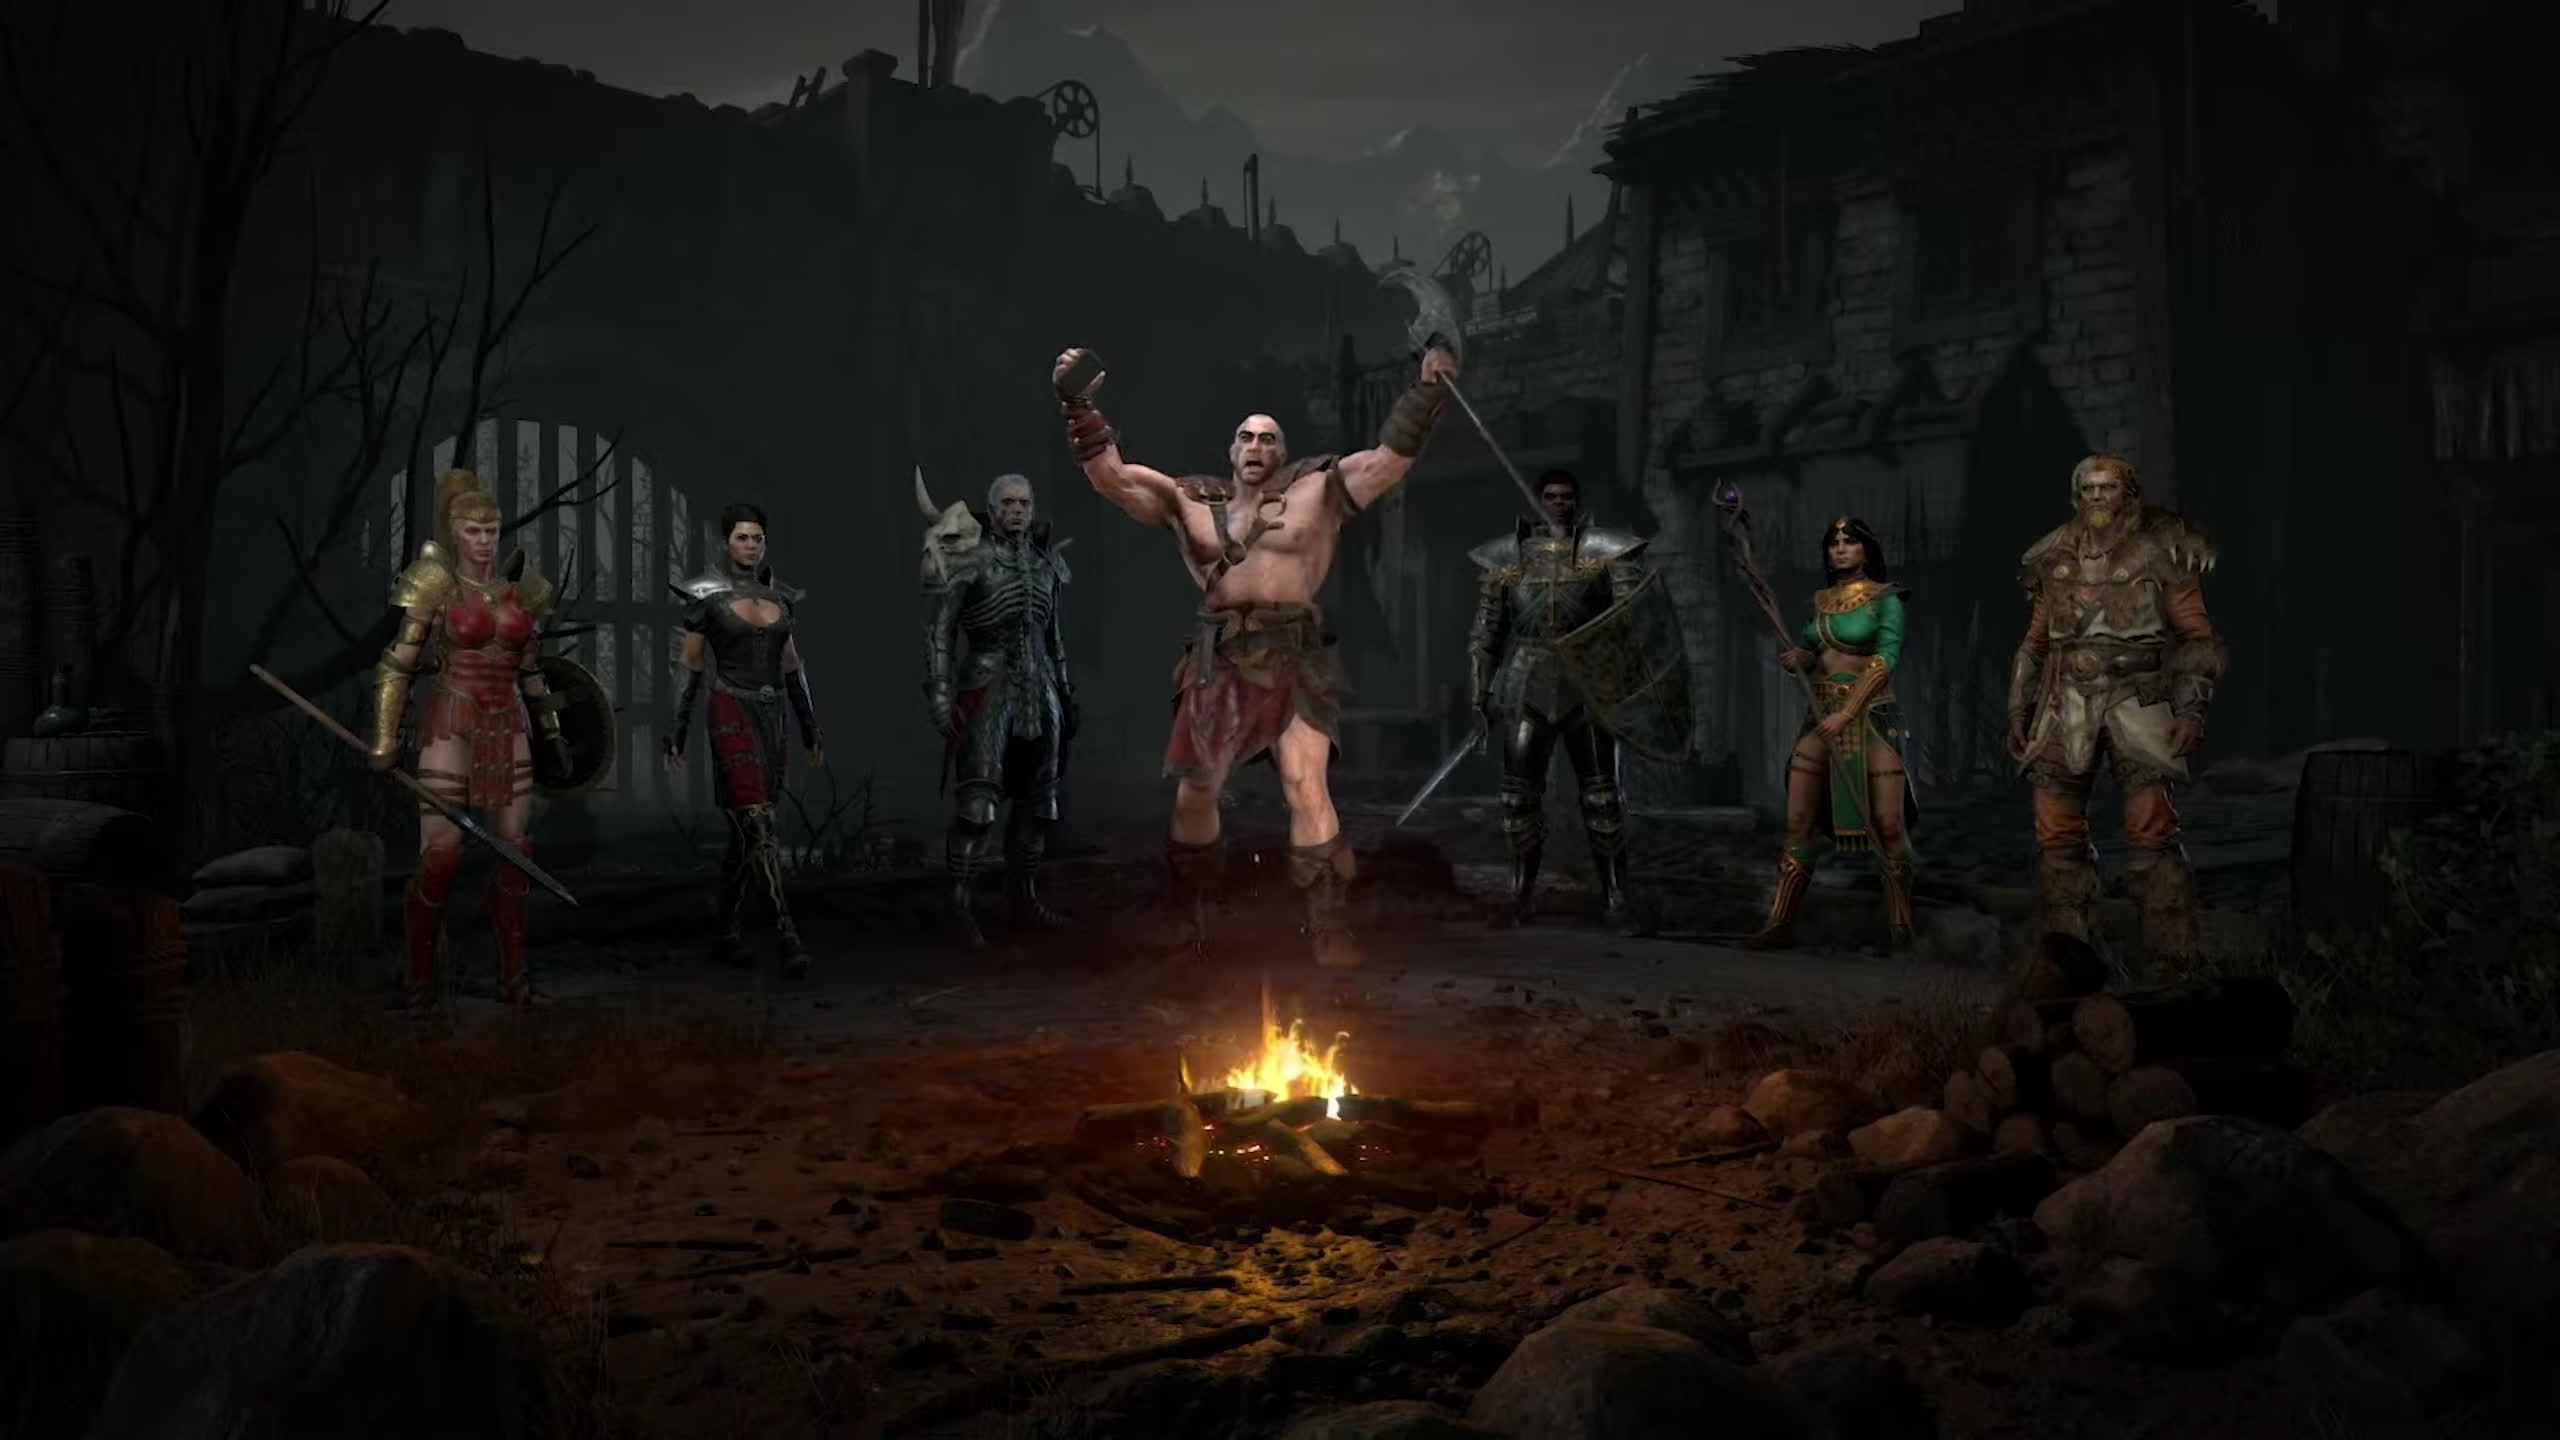 Diablo II: Resurrected online play was down for several hours after launch